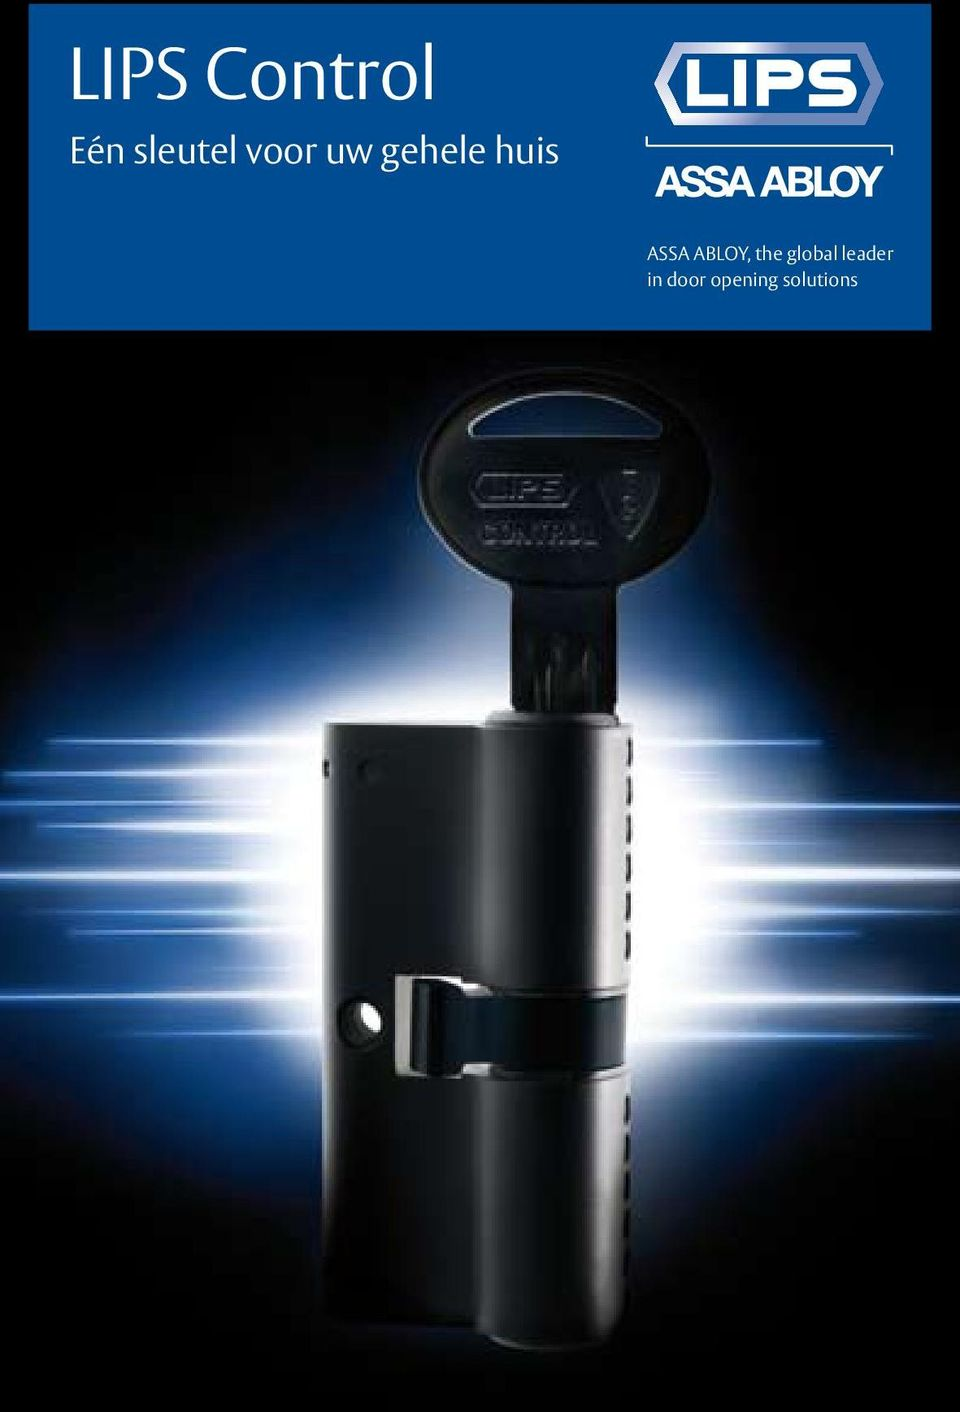 ABLOY, the global leader